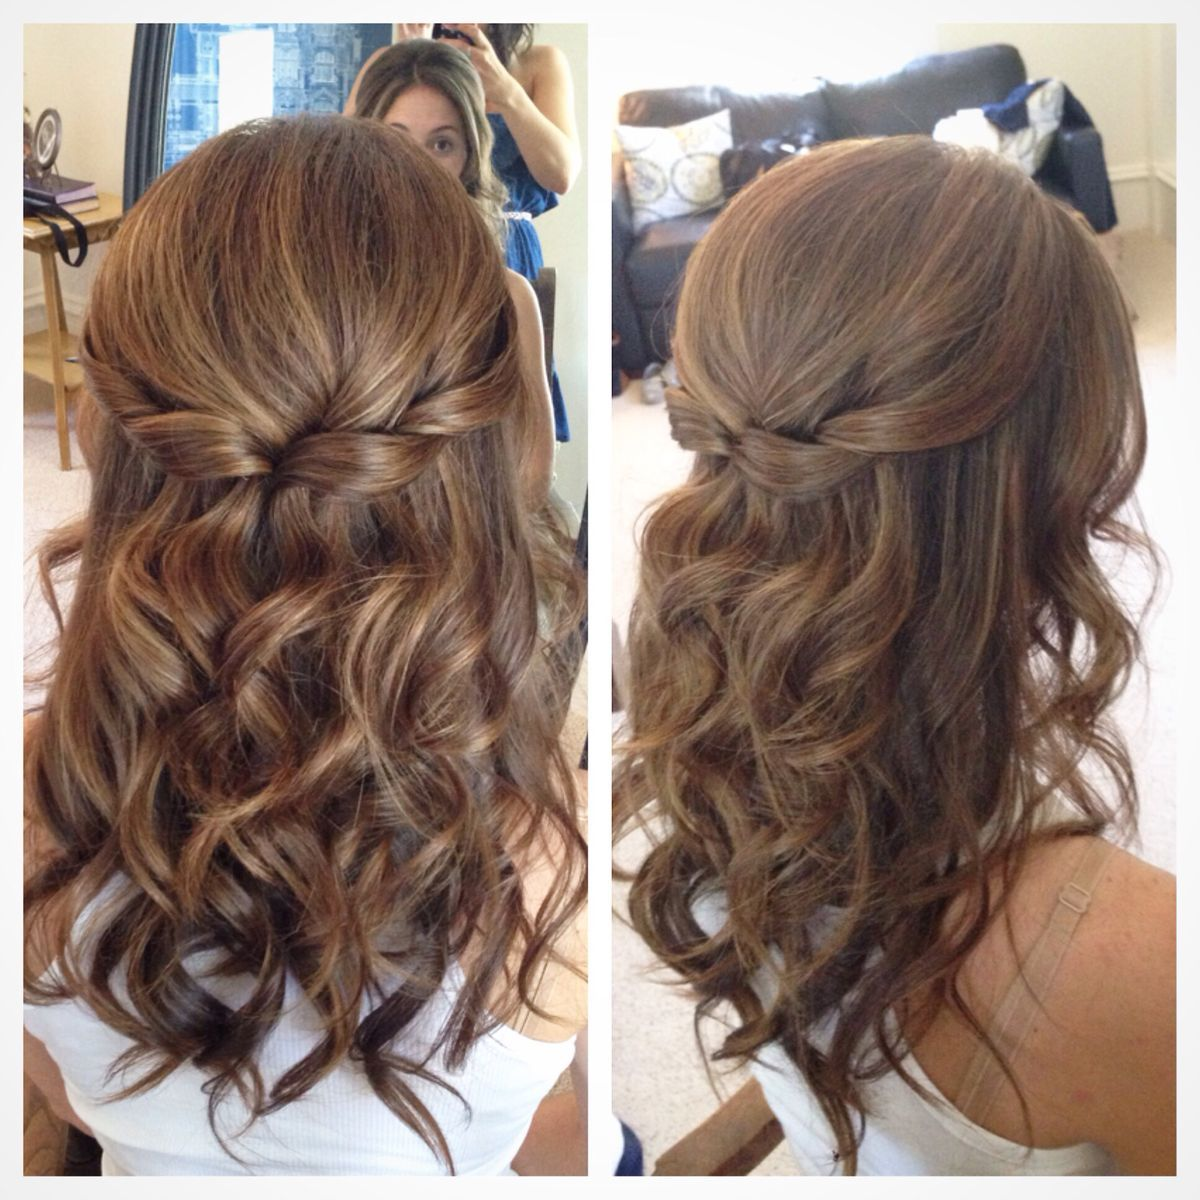 Bridesmaids Hairstyles Simple Wedding Hairstyles Best Photos  Page 2 Of 4  Simple Wedding